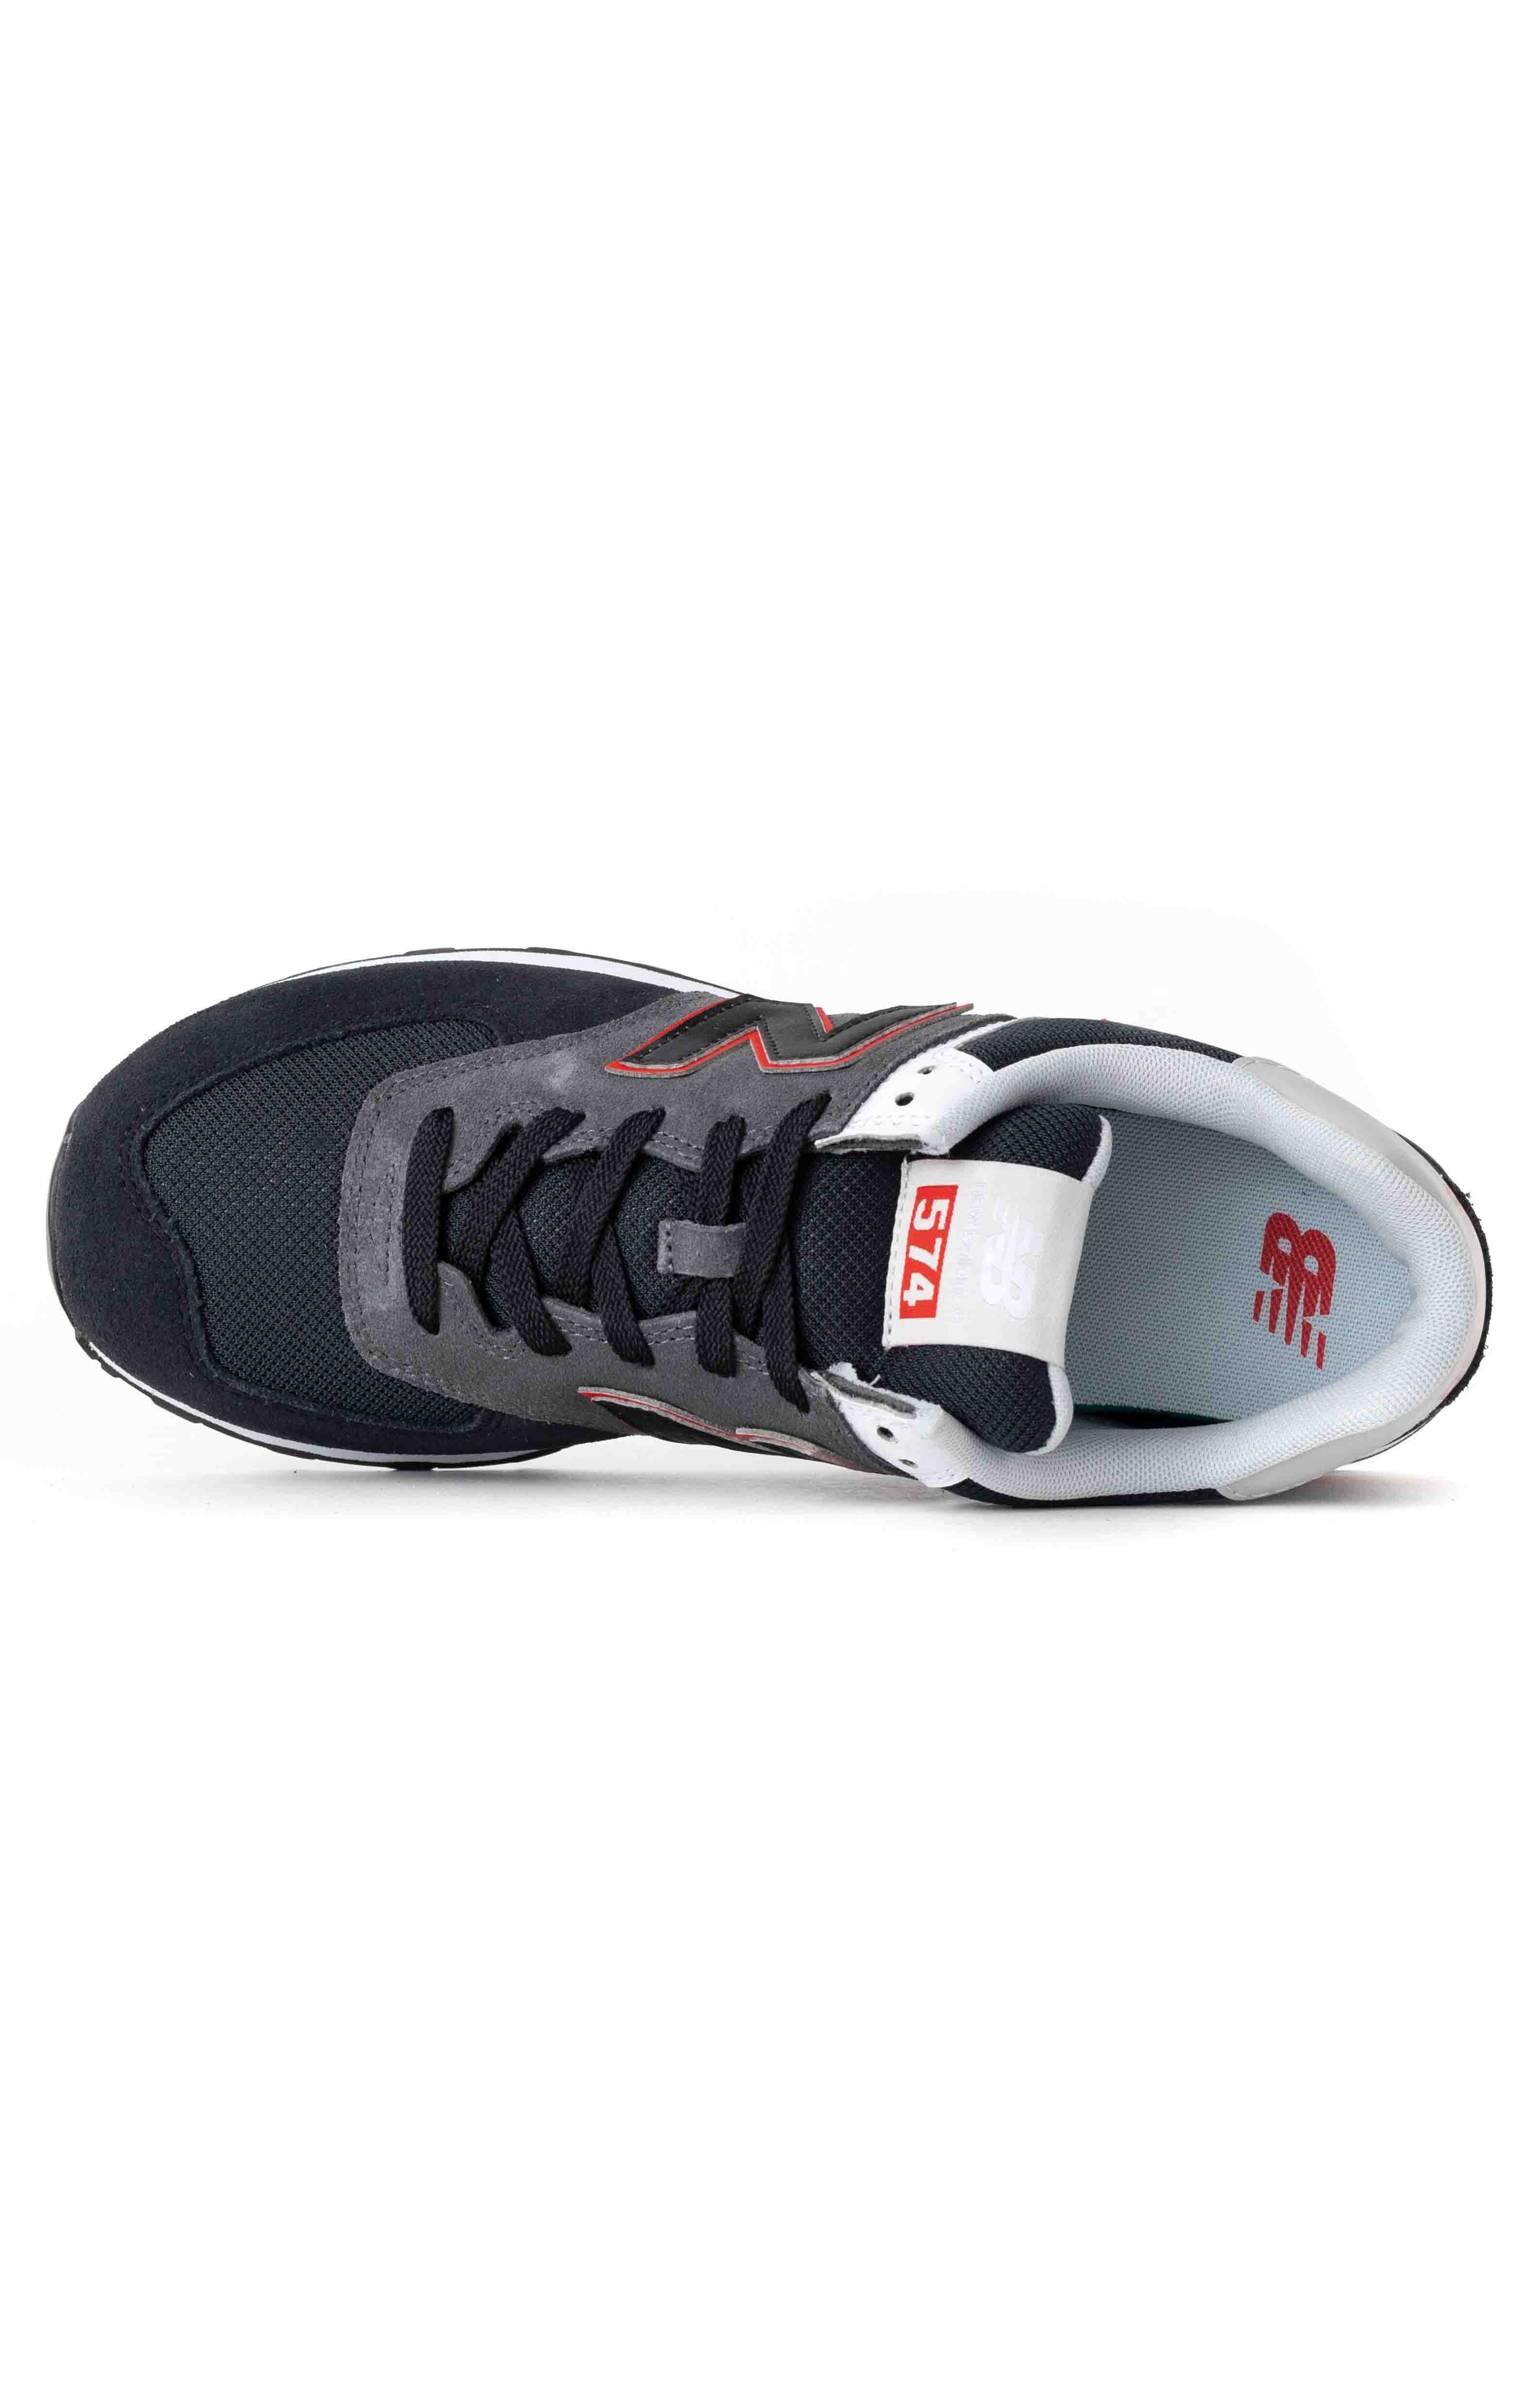 (ML574SM2) 574 Shoes - Black/Velocity Red 2